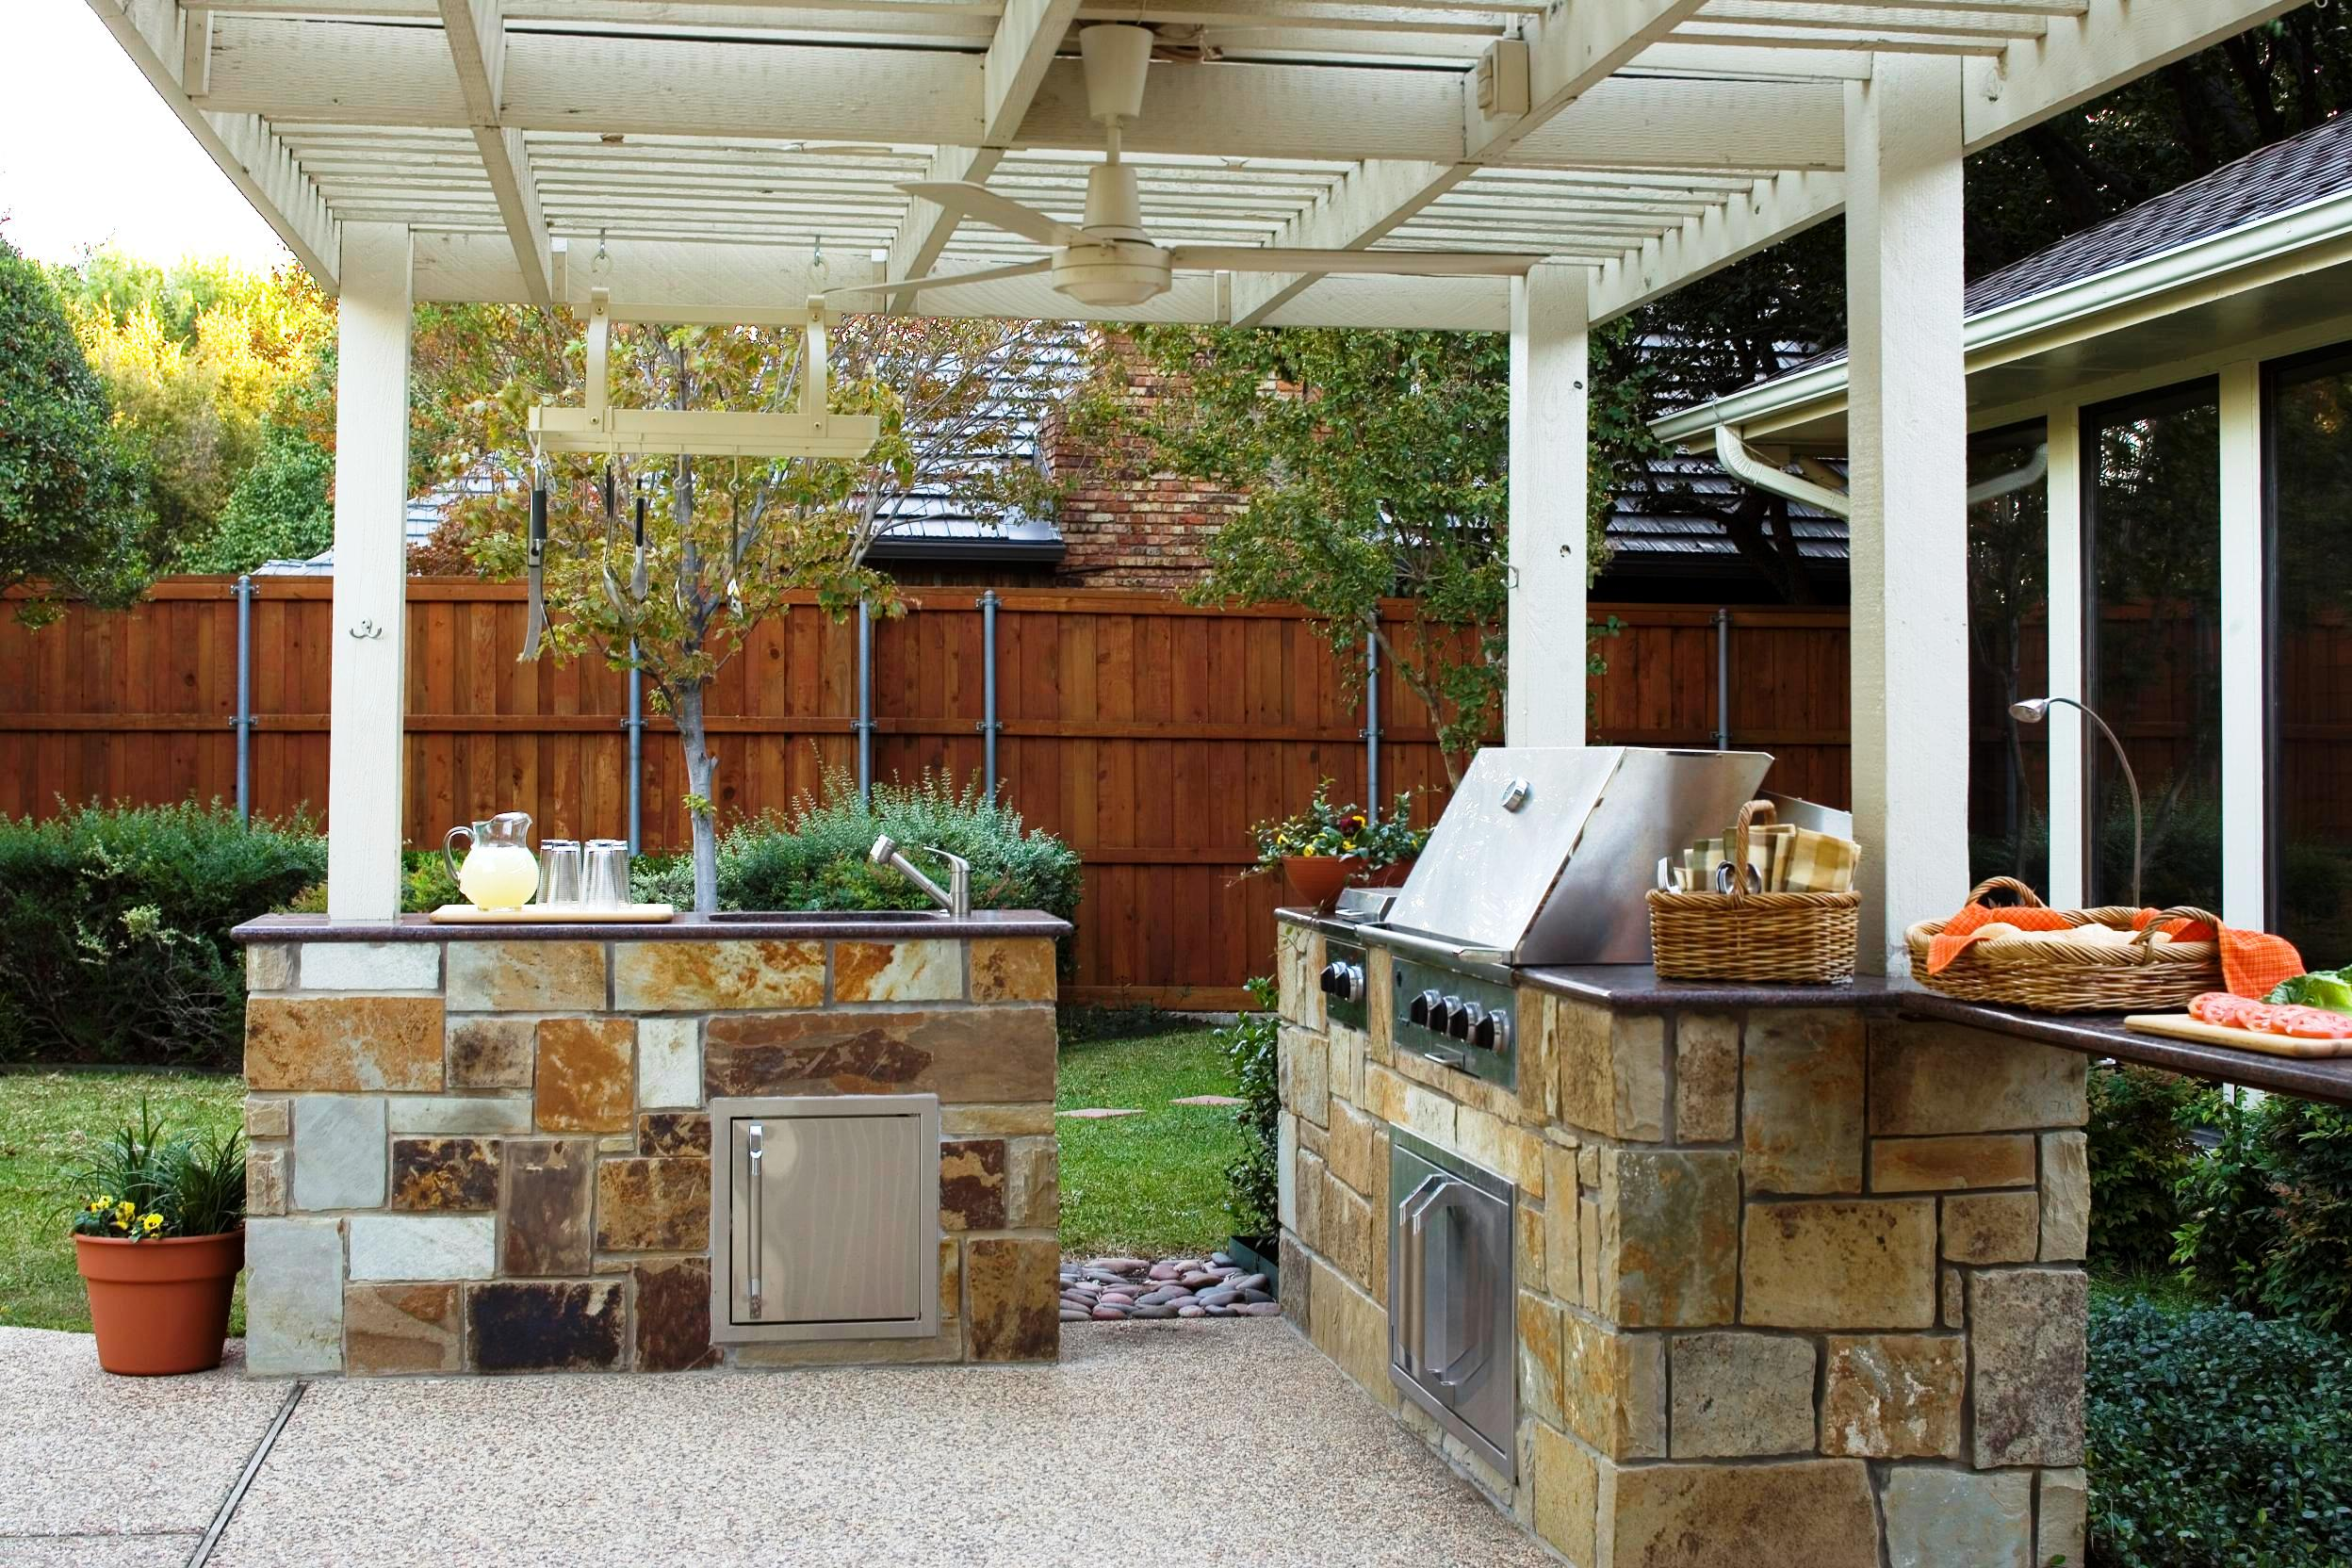 30 Rustic Outdoor Design For Your Home - The WoW Style on Rustic Backyard Ideas id=38605